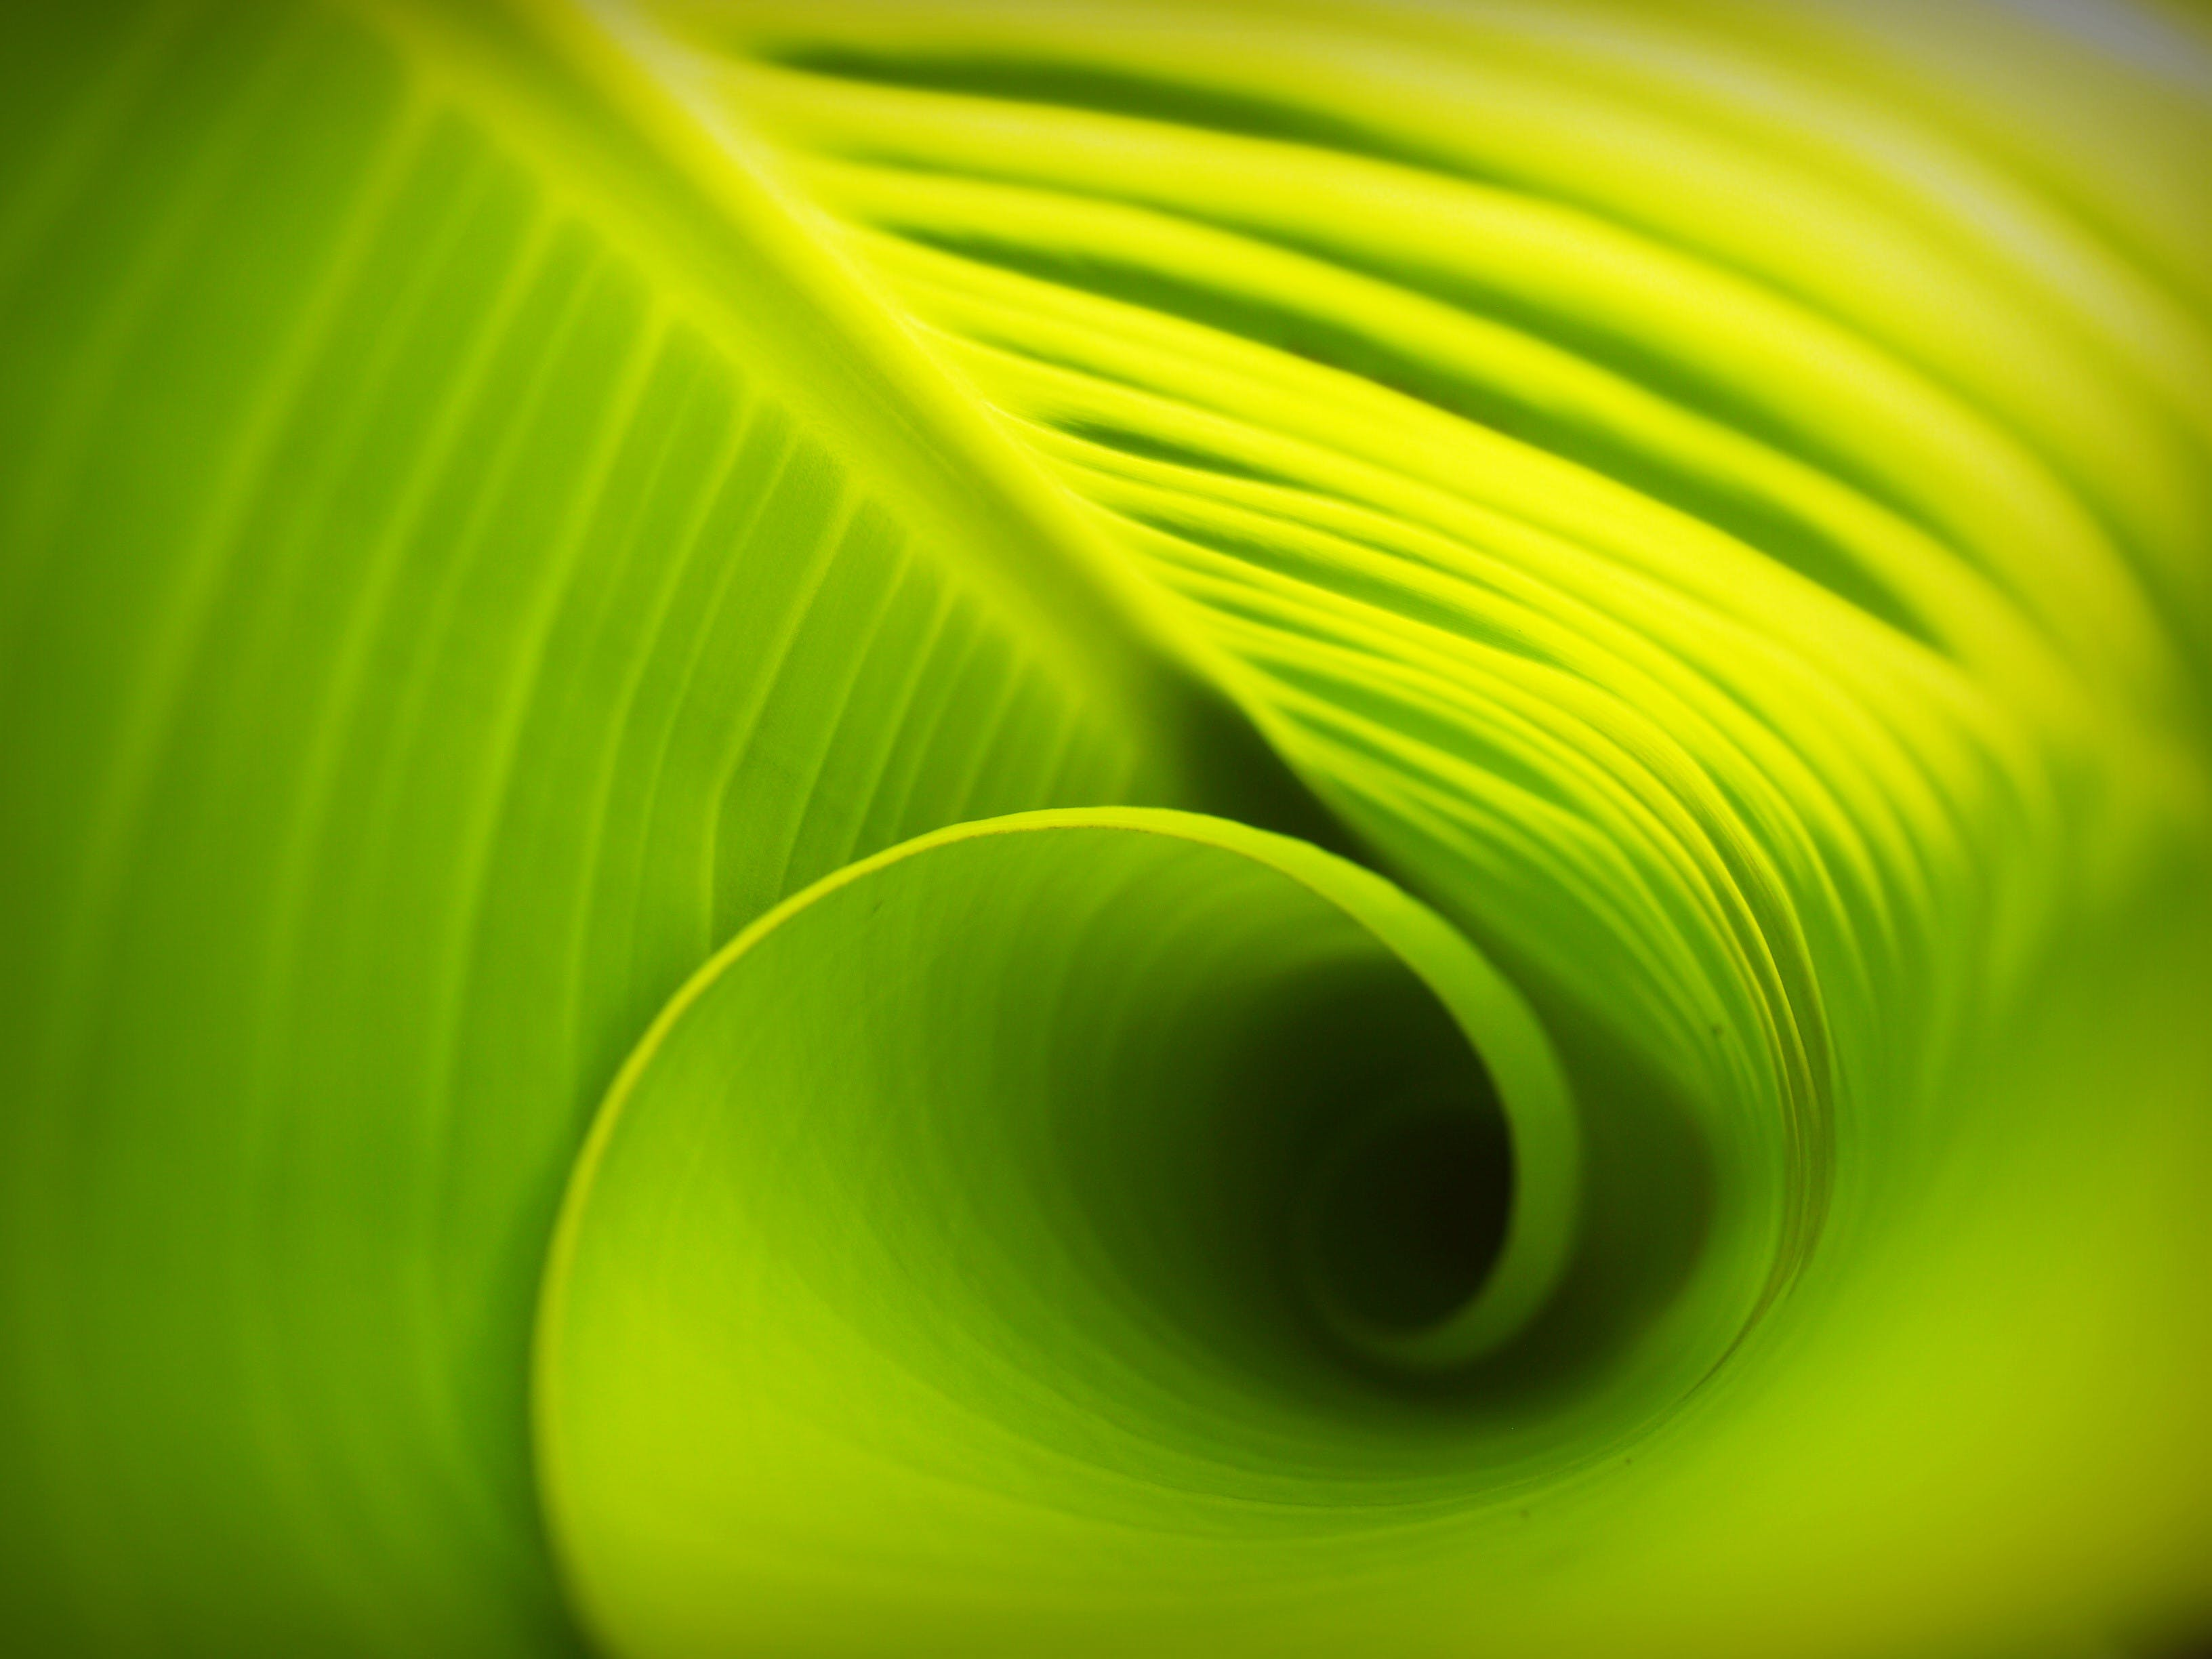 Free stock photo of background, banana leaves, drop, element